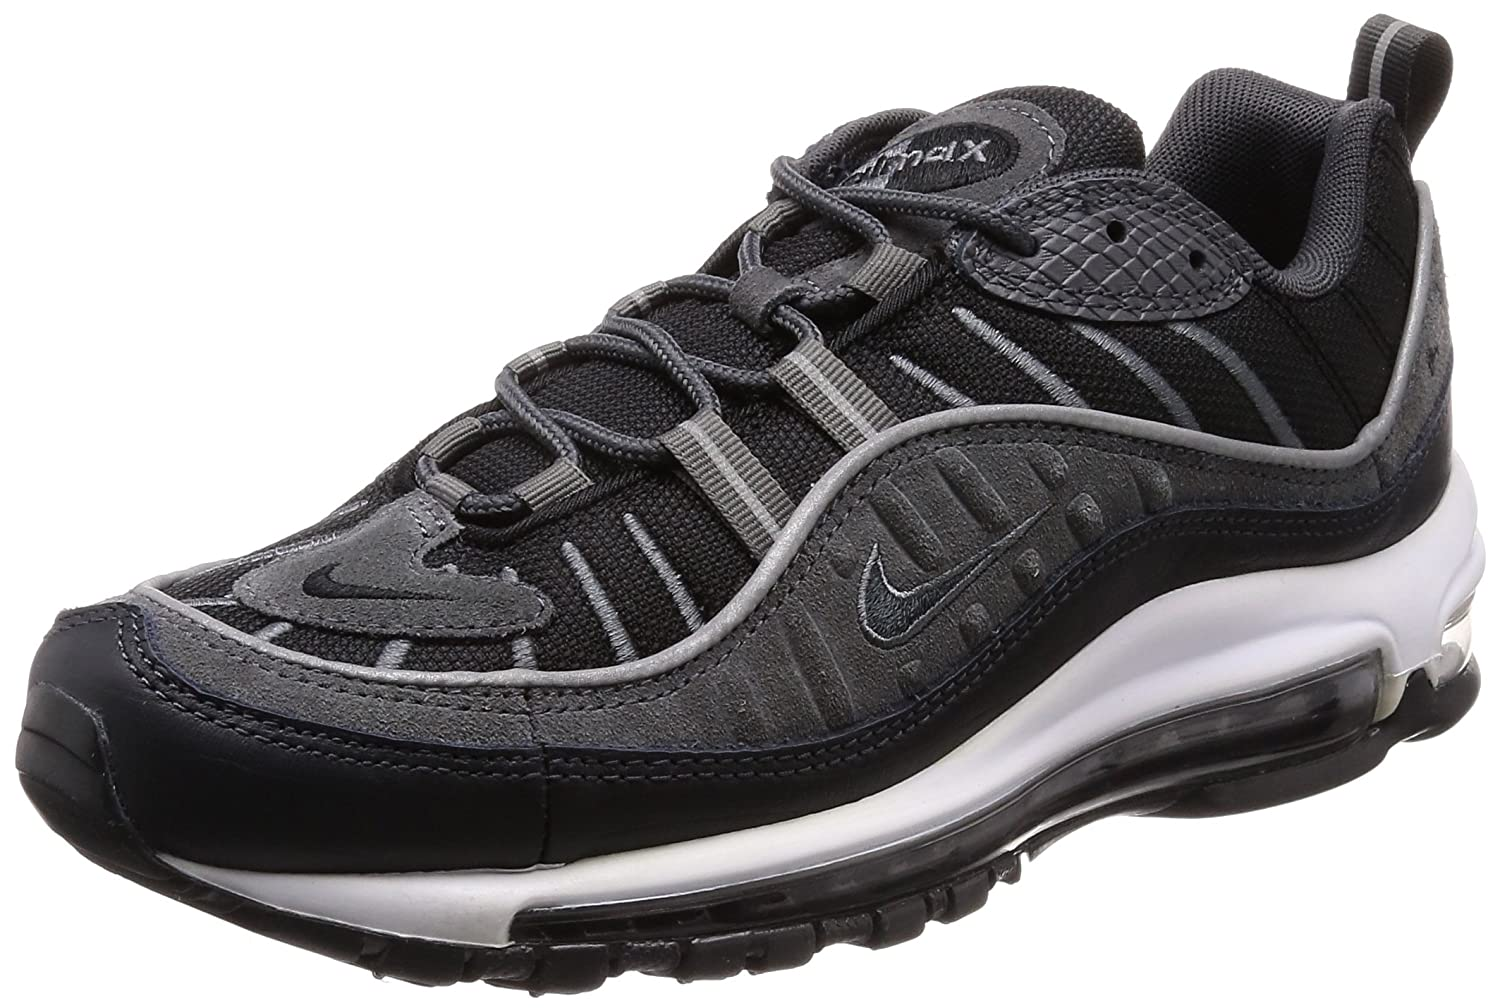 | Nike AIR MAX 98 Black Anthracite AO9380 001 US